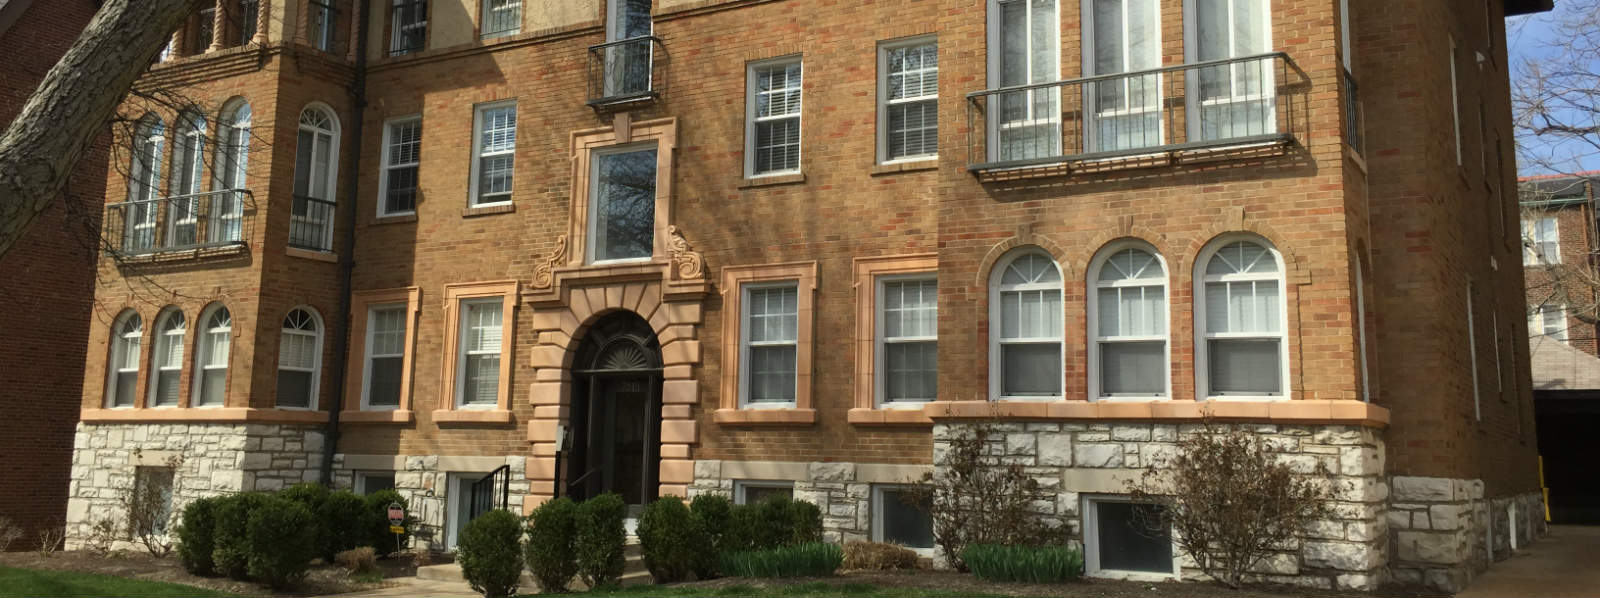 Clayton Condos For Sale In Clayton Mo 63105 Updated Daily